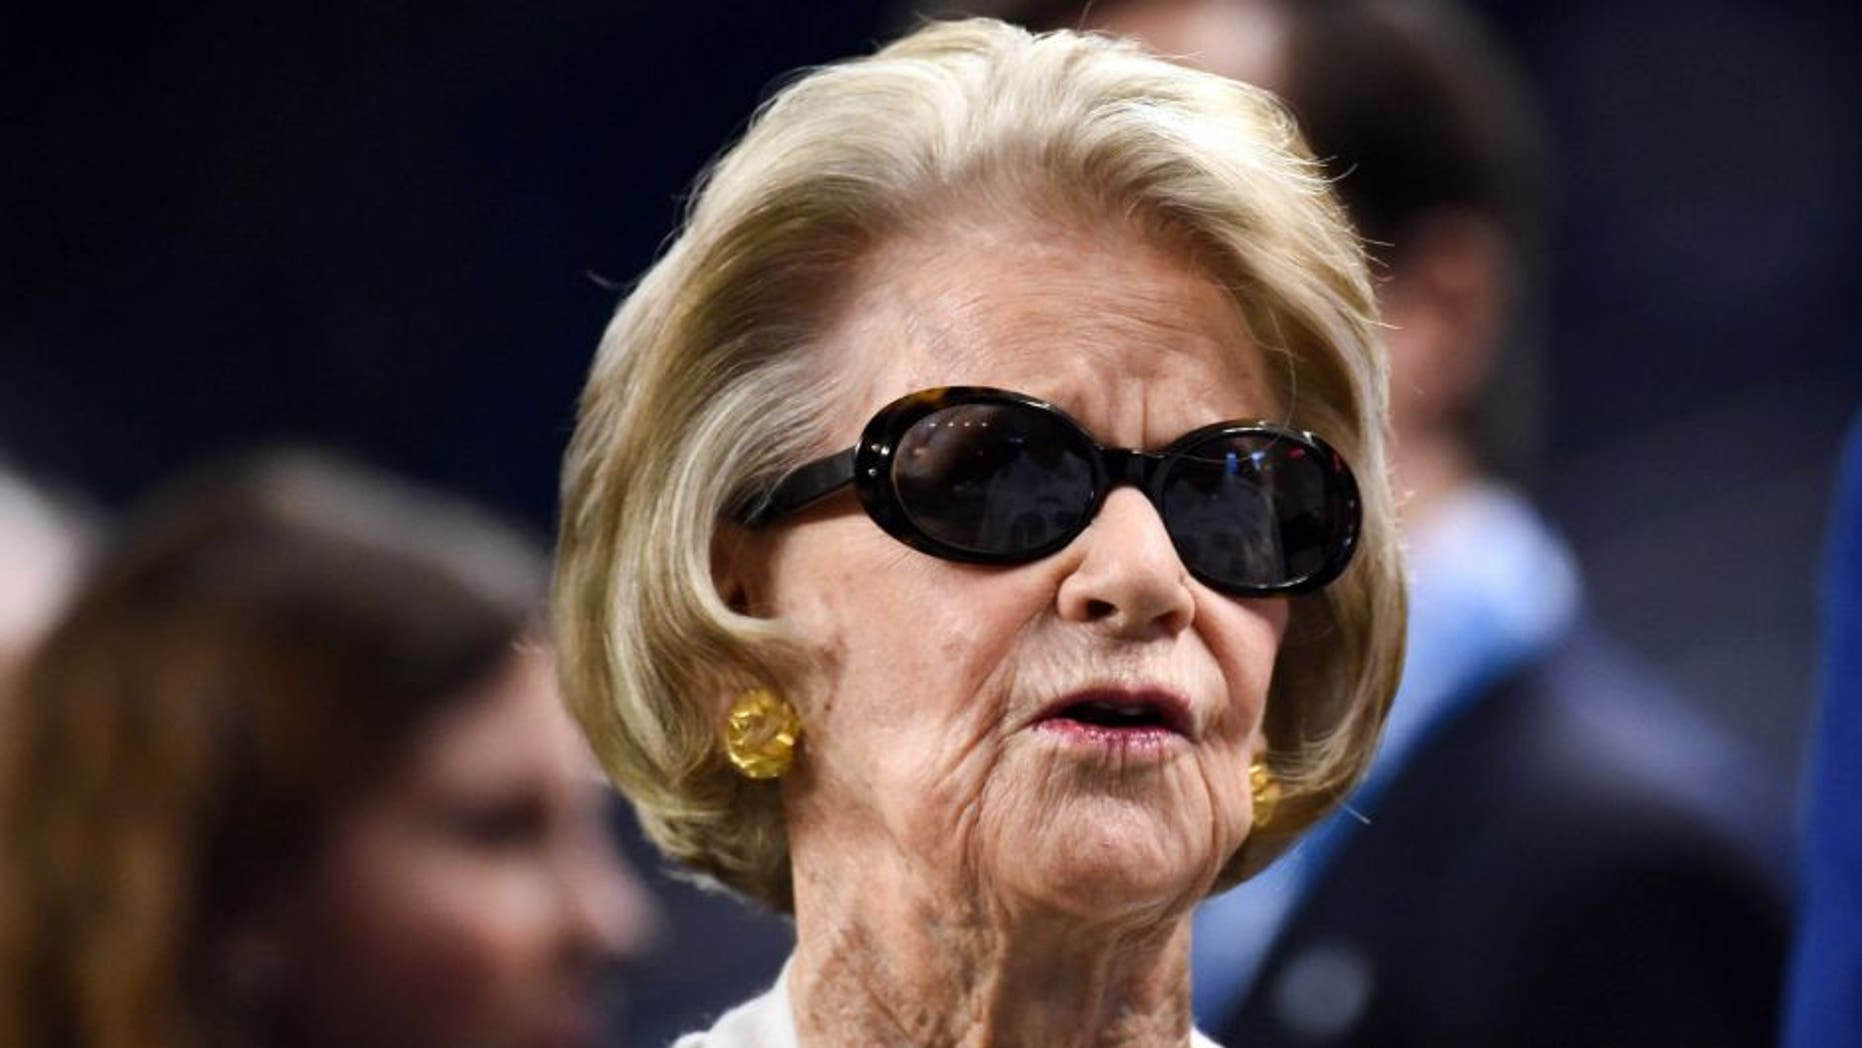 Oct 18, 2015; Detroit, MI, USA; Detroit Lions owner Martha Ford before the game against the Chicago Bears at Ford Field. Mandatory Credit: Tim Fuller-USA TODAY Sports